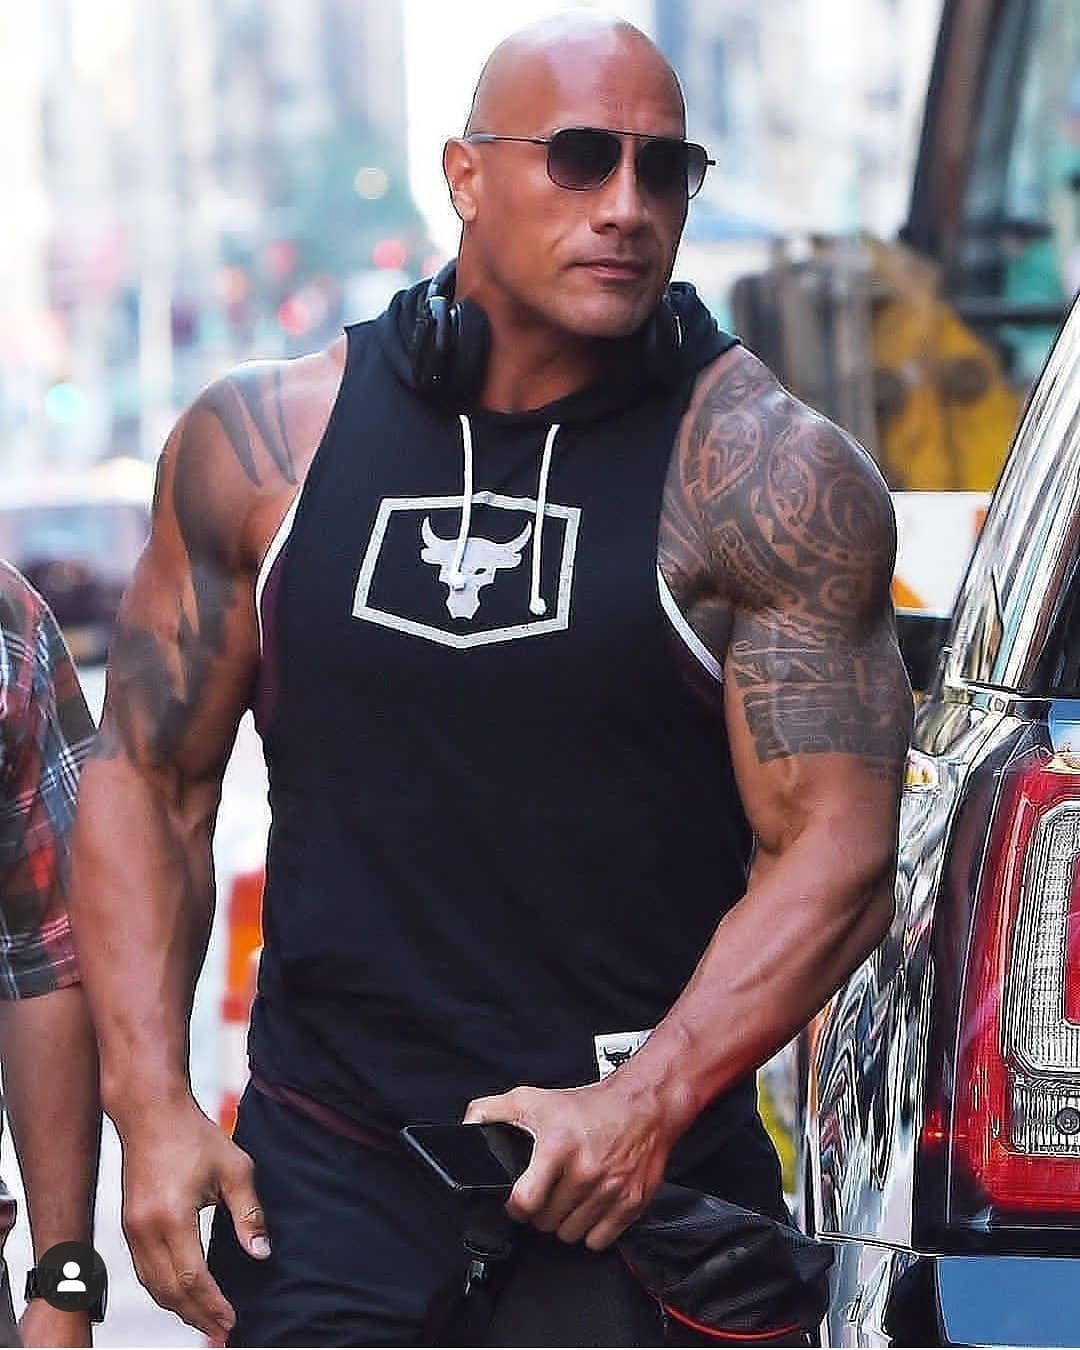 Pin by Beth Aschliman on the rock in 2020 | The rock ...